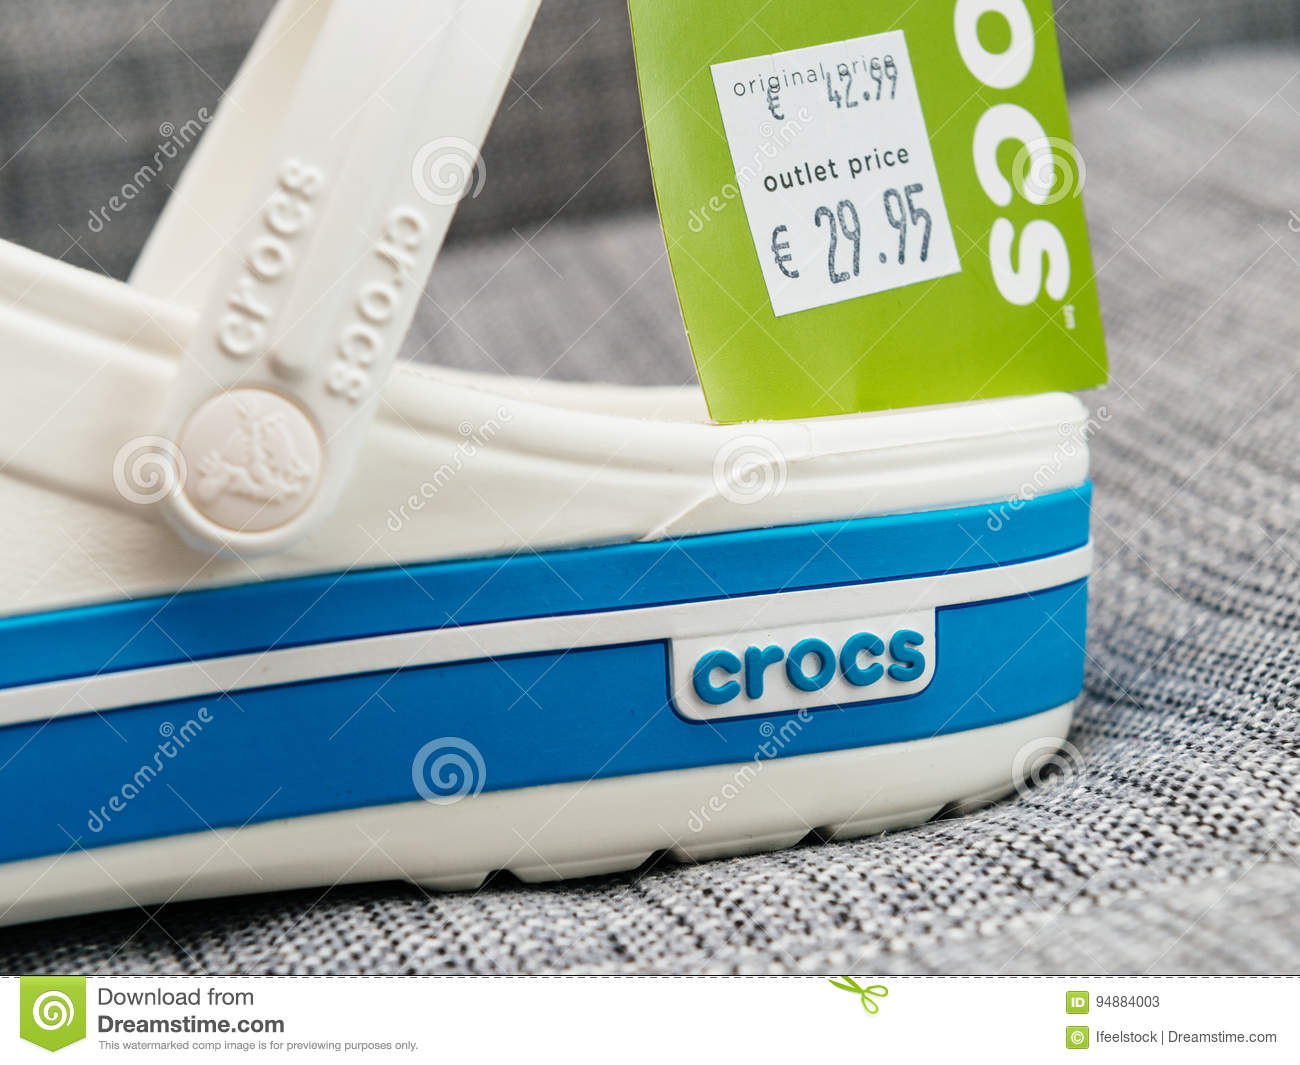 9c5c696dfe7f3 Crocs Clogs Shoes With Regular And Outlet Price Editorial Stock ...